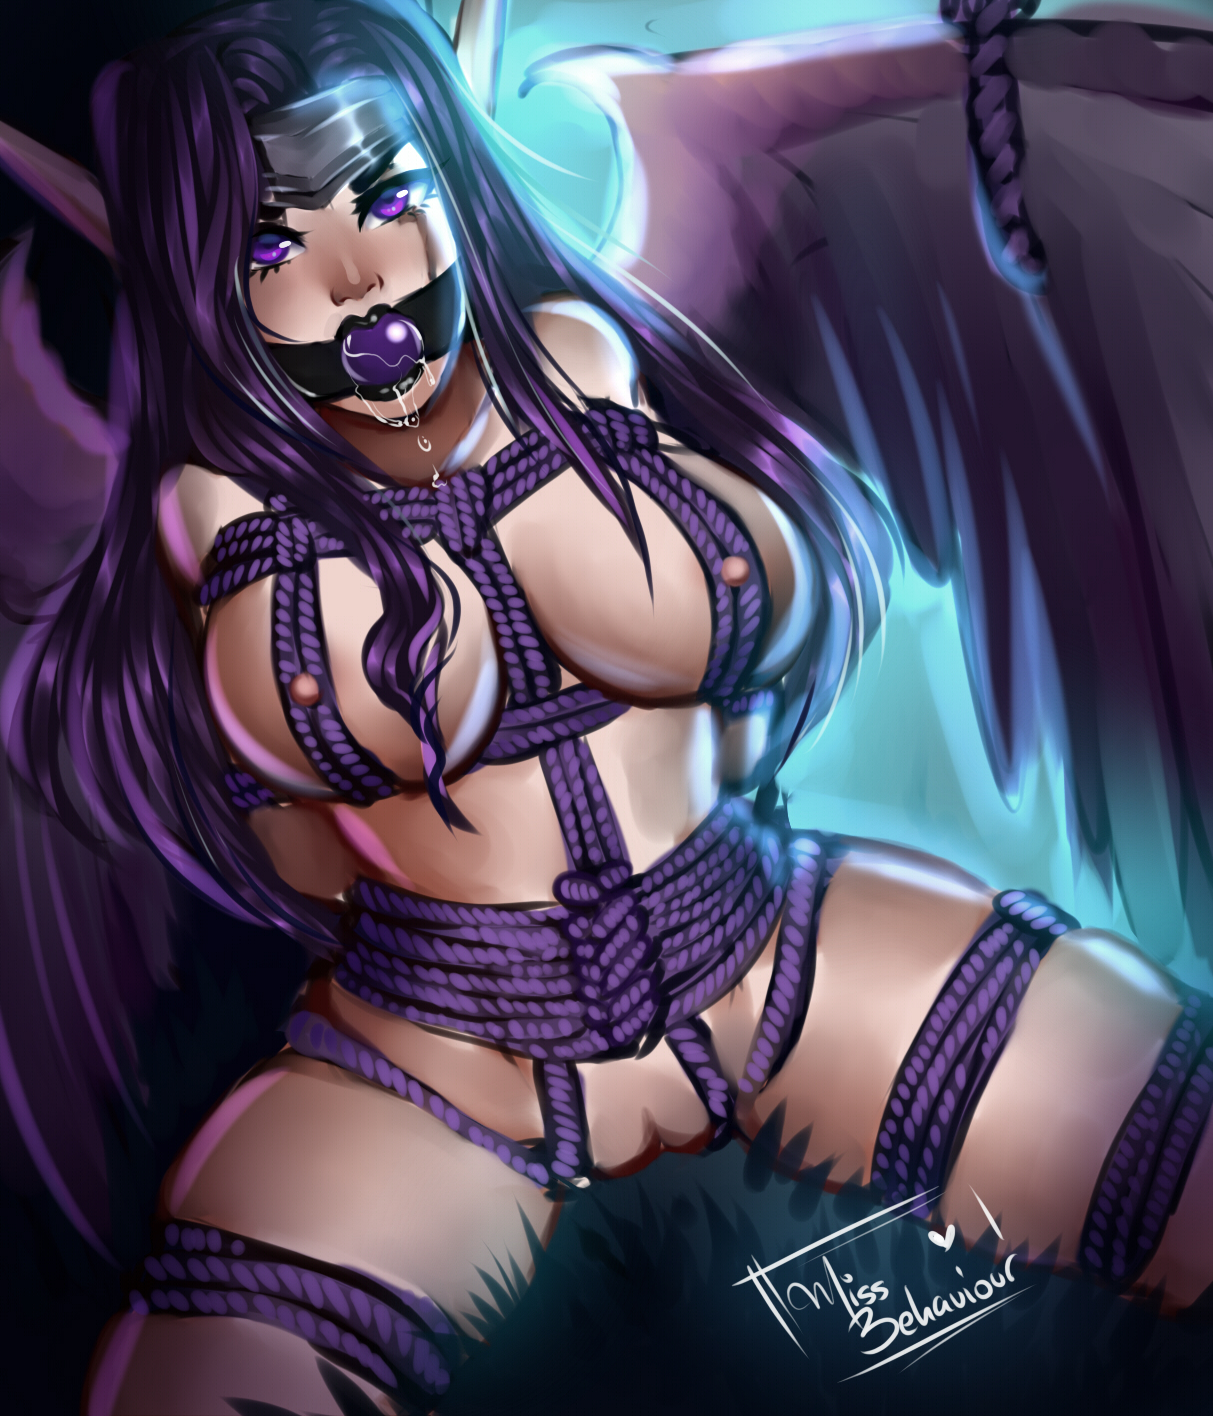 2377634 - League_of_Legends MissBehaviour Morgana